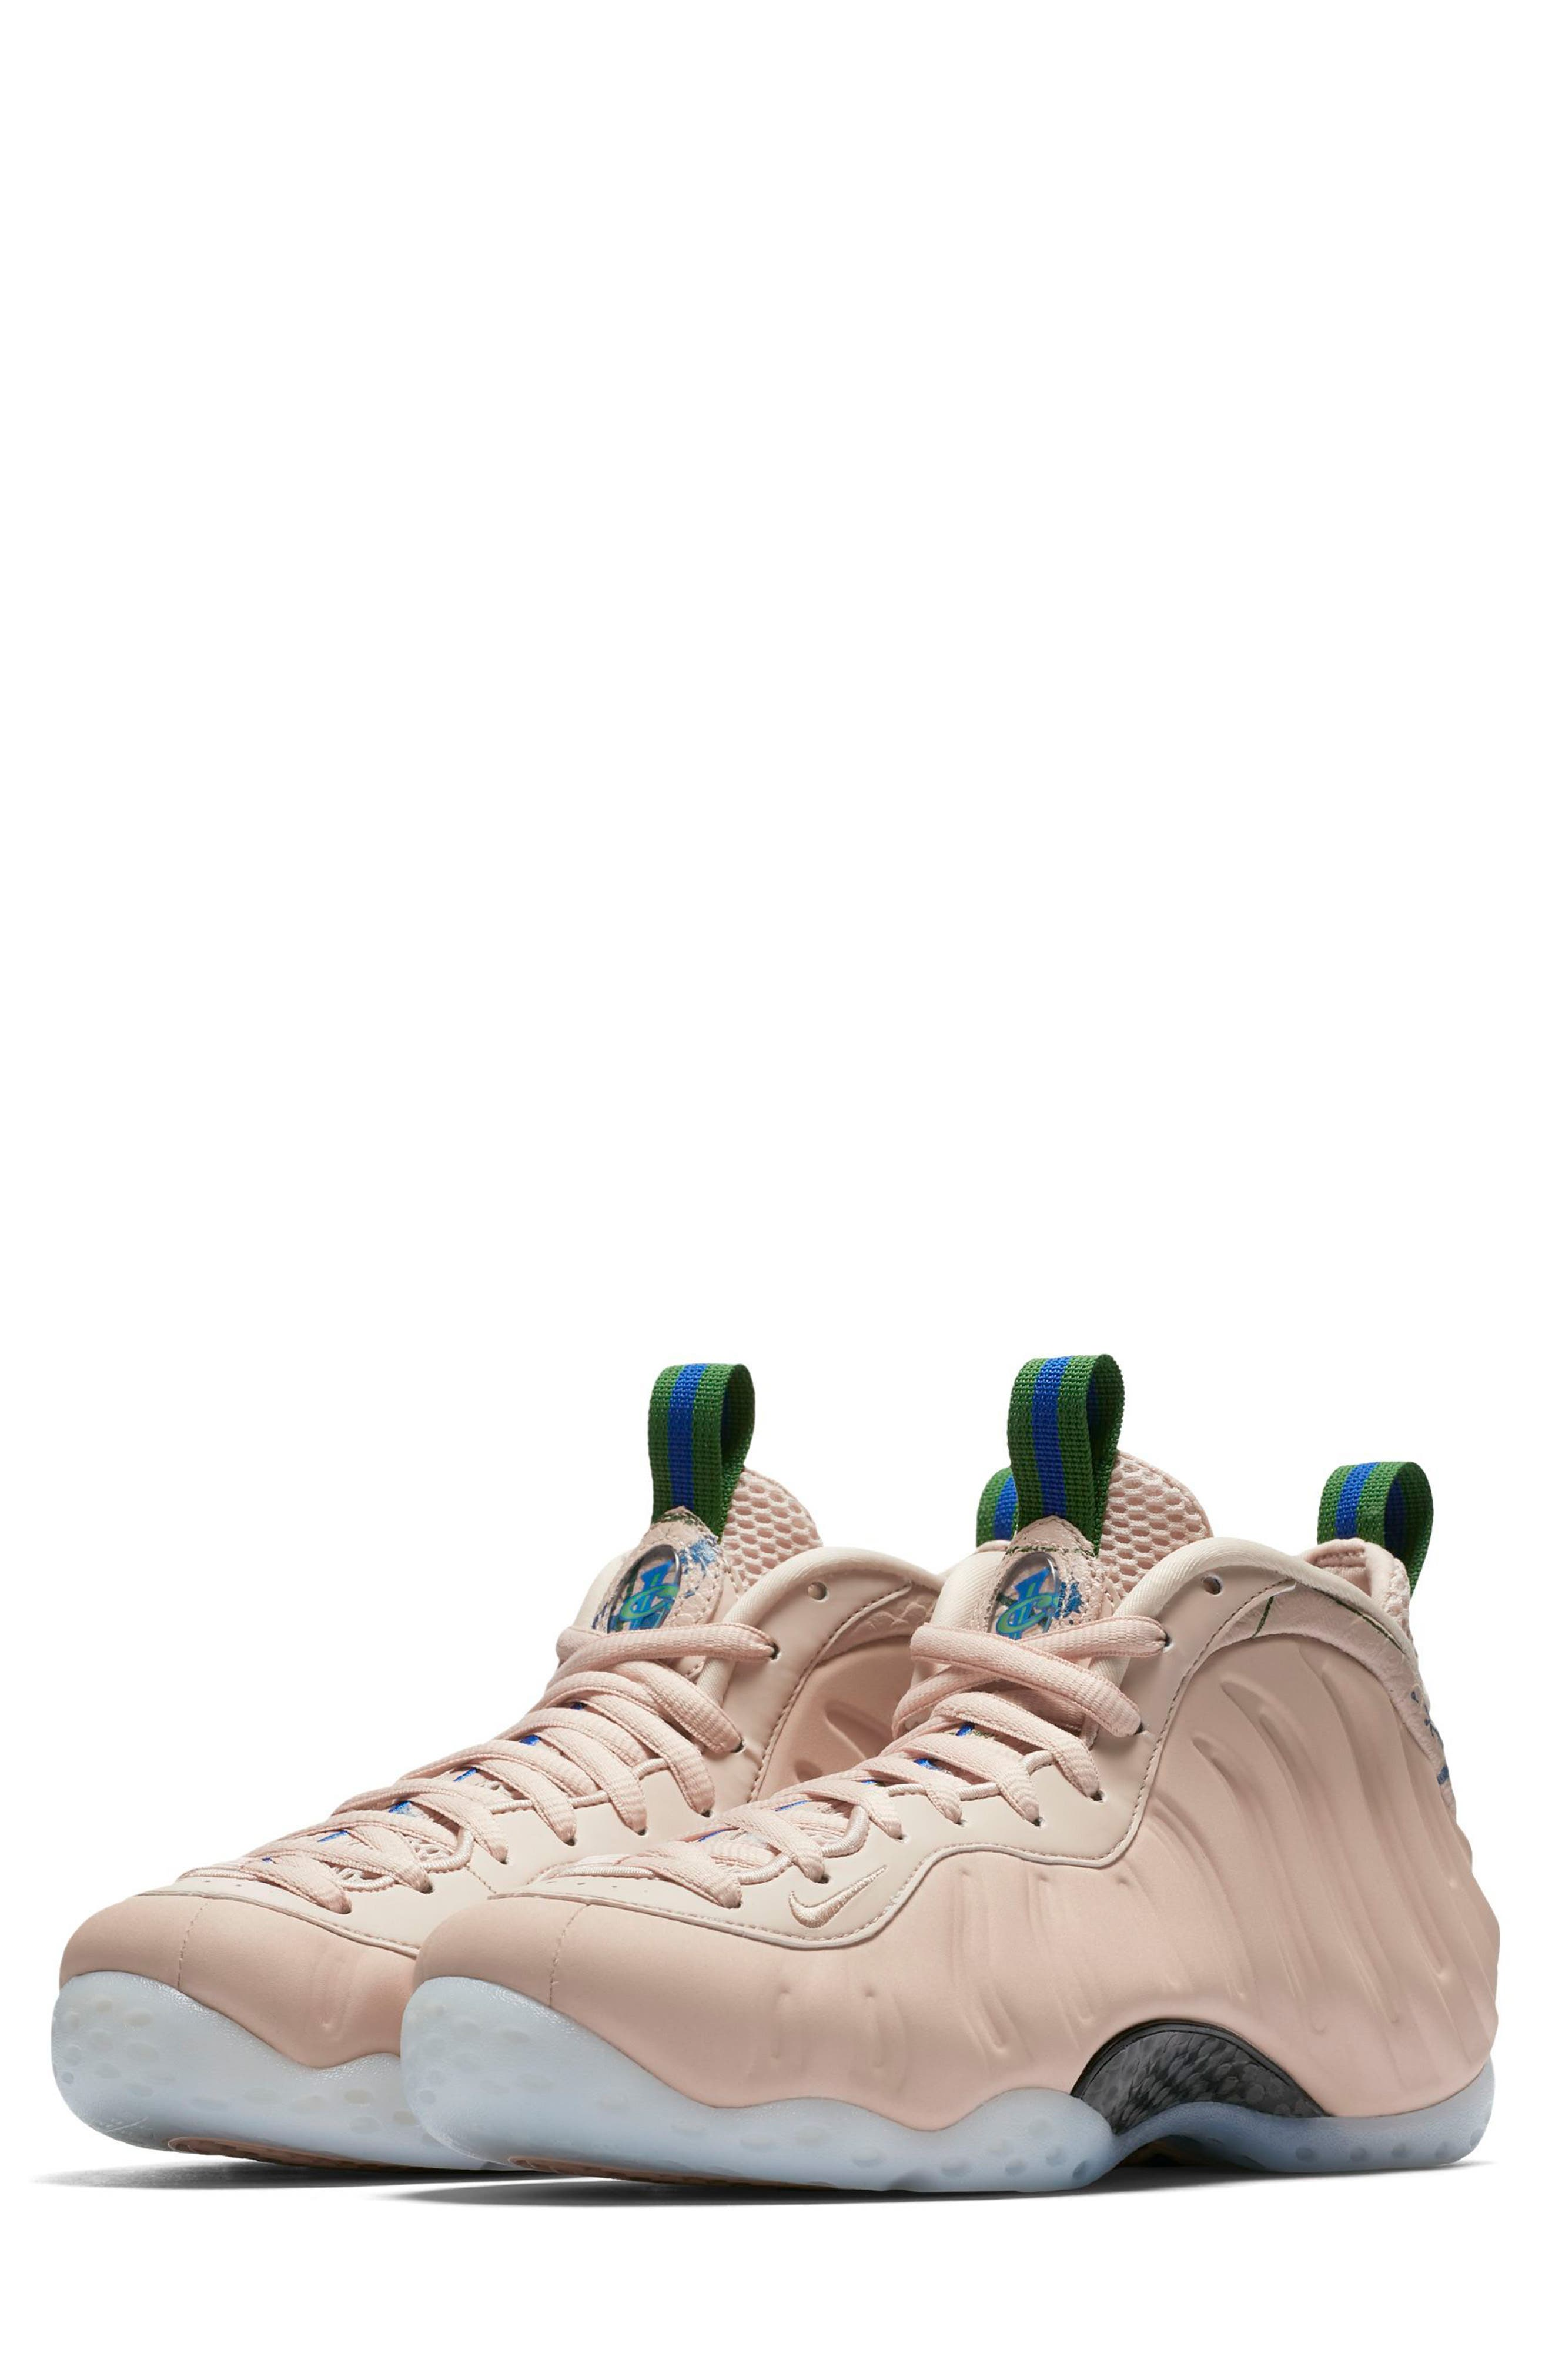 Air Foamposite One Sneaker,                             Main thumbnail 1, color,                             Particle Beige/ White